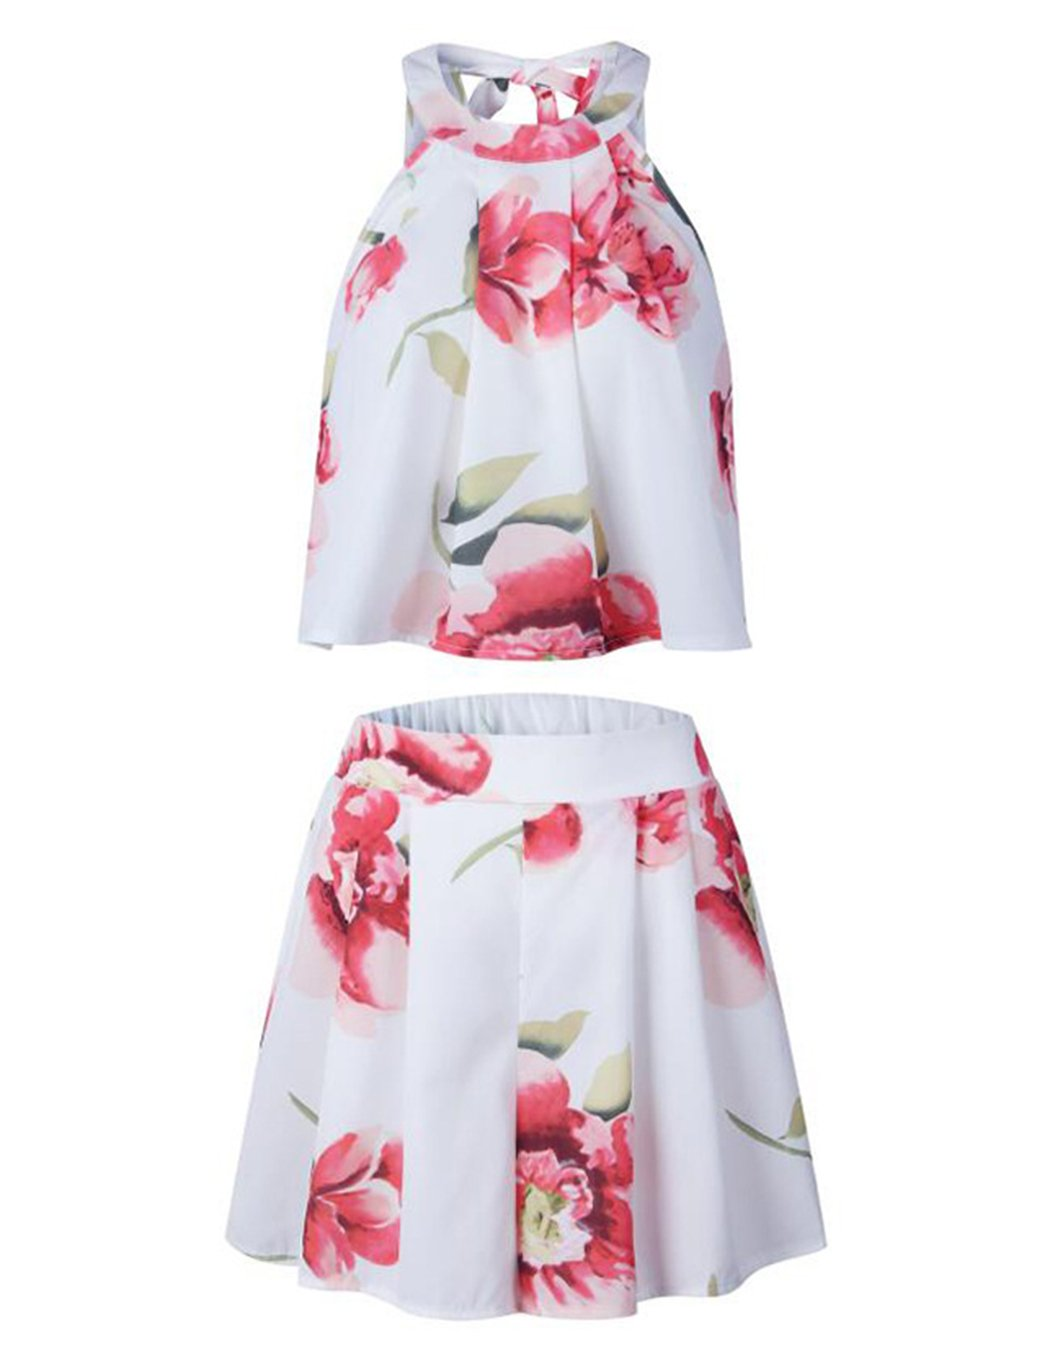 Women\'s Floral Printed Summer Dress Romper Boho Playsuit Jumpsuits Beach 2 Piece Outfits Top with Shorts White